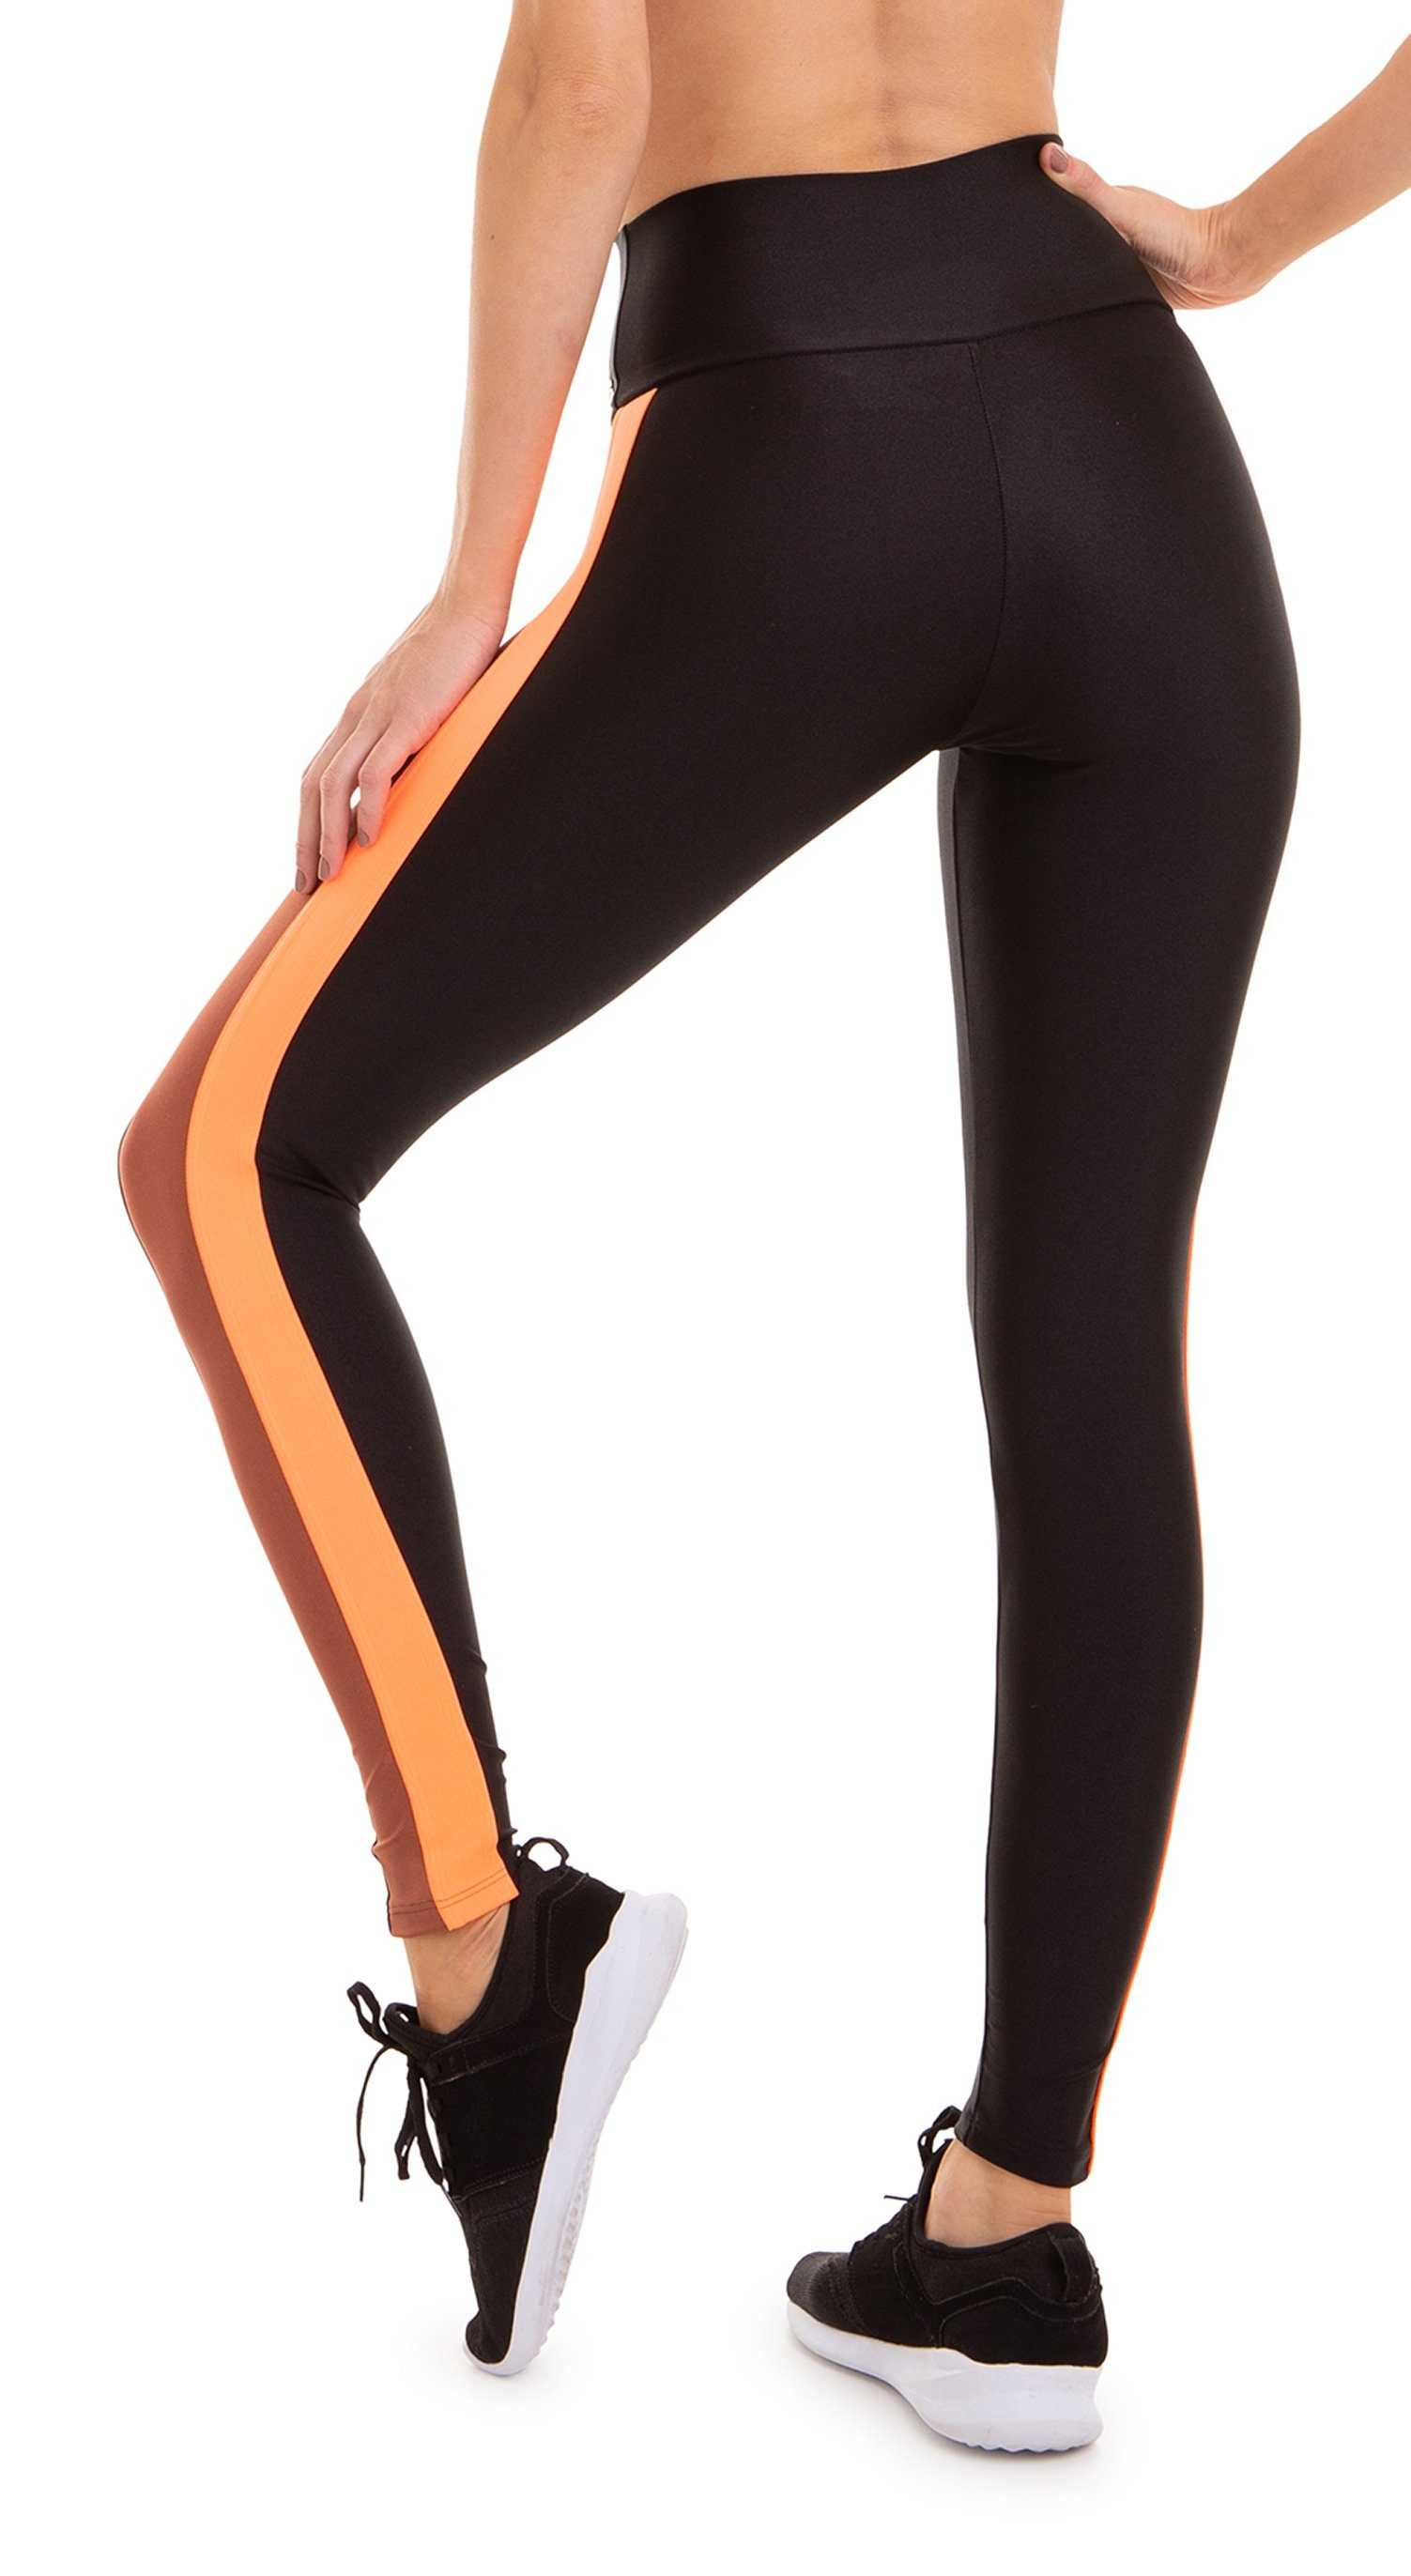 Brazilian Legging - Splendor Golden Brown/Black & Neon Orange